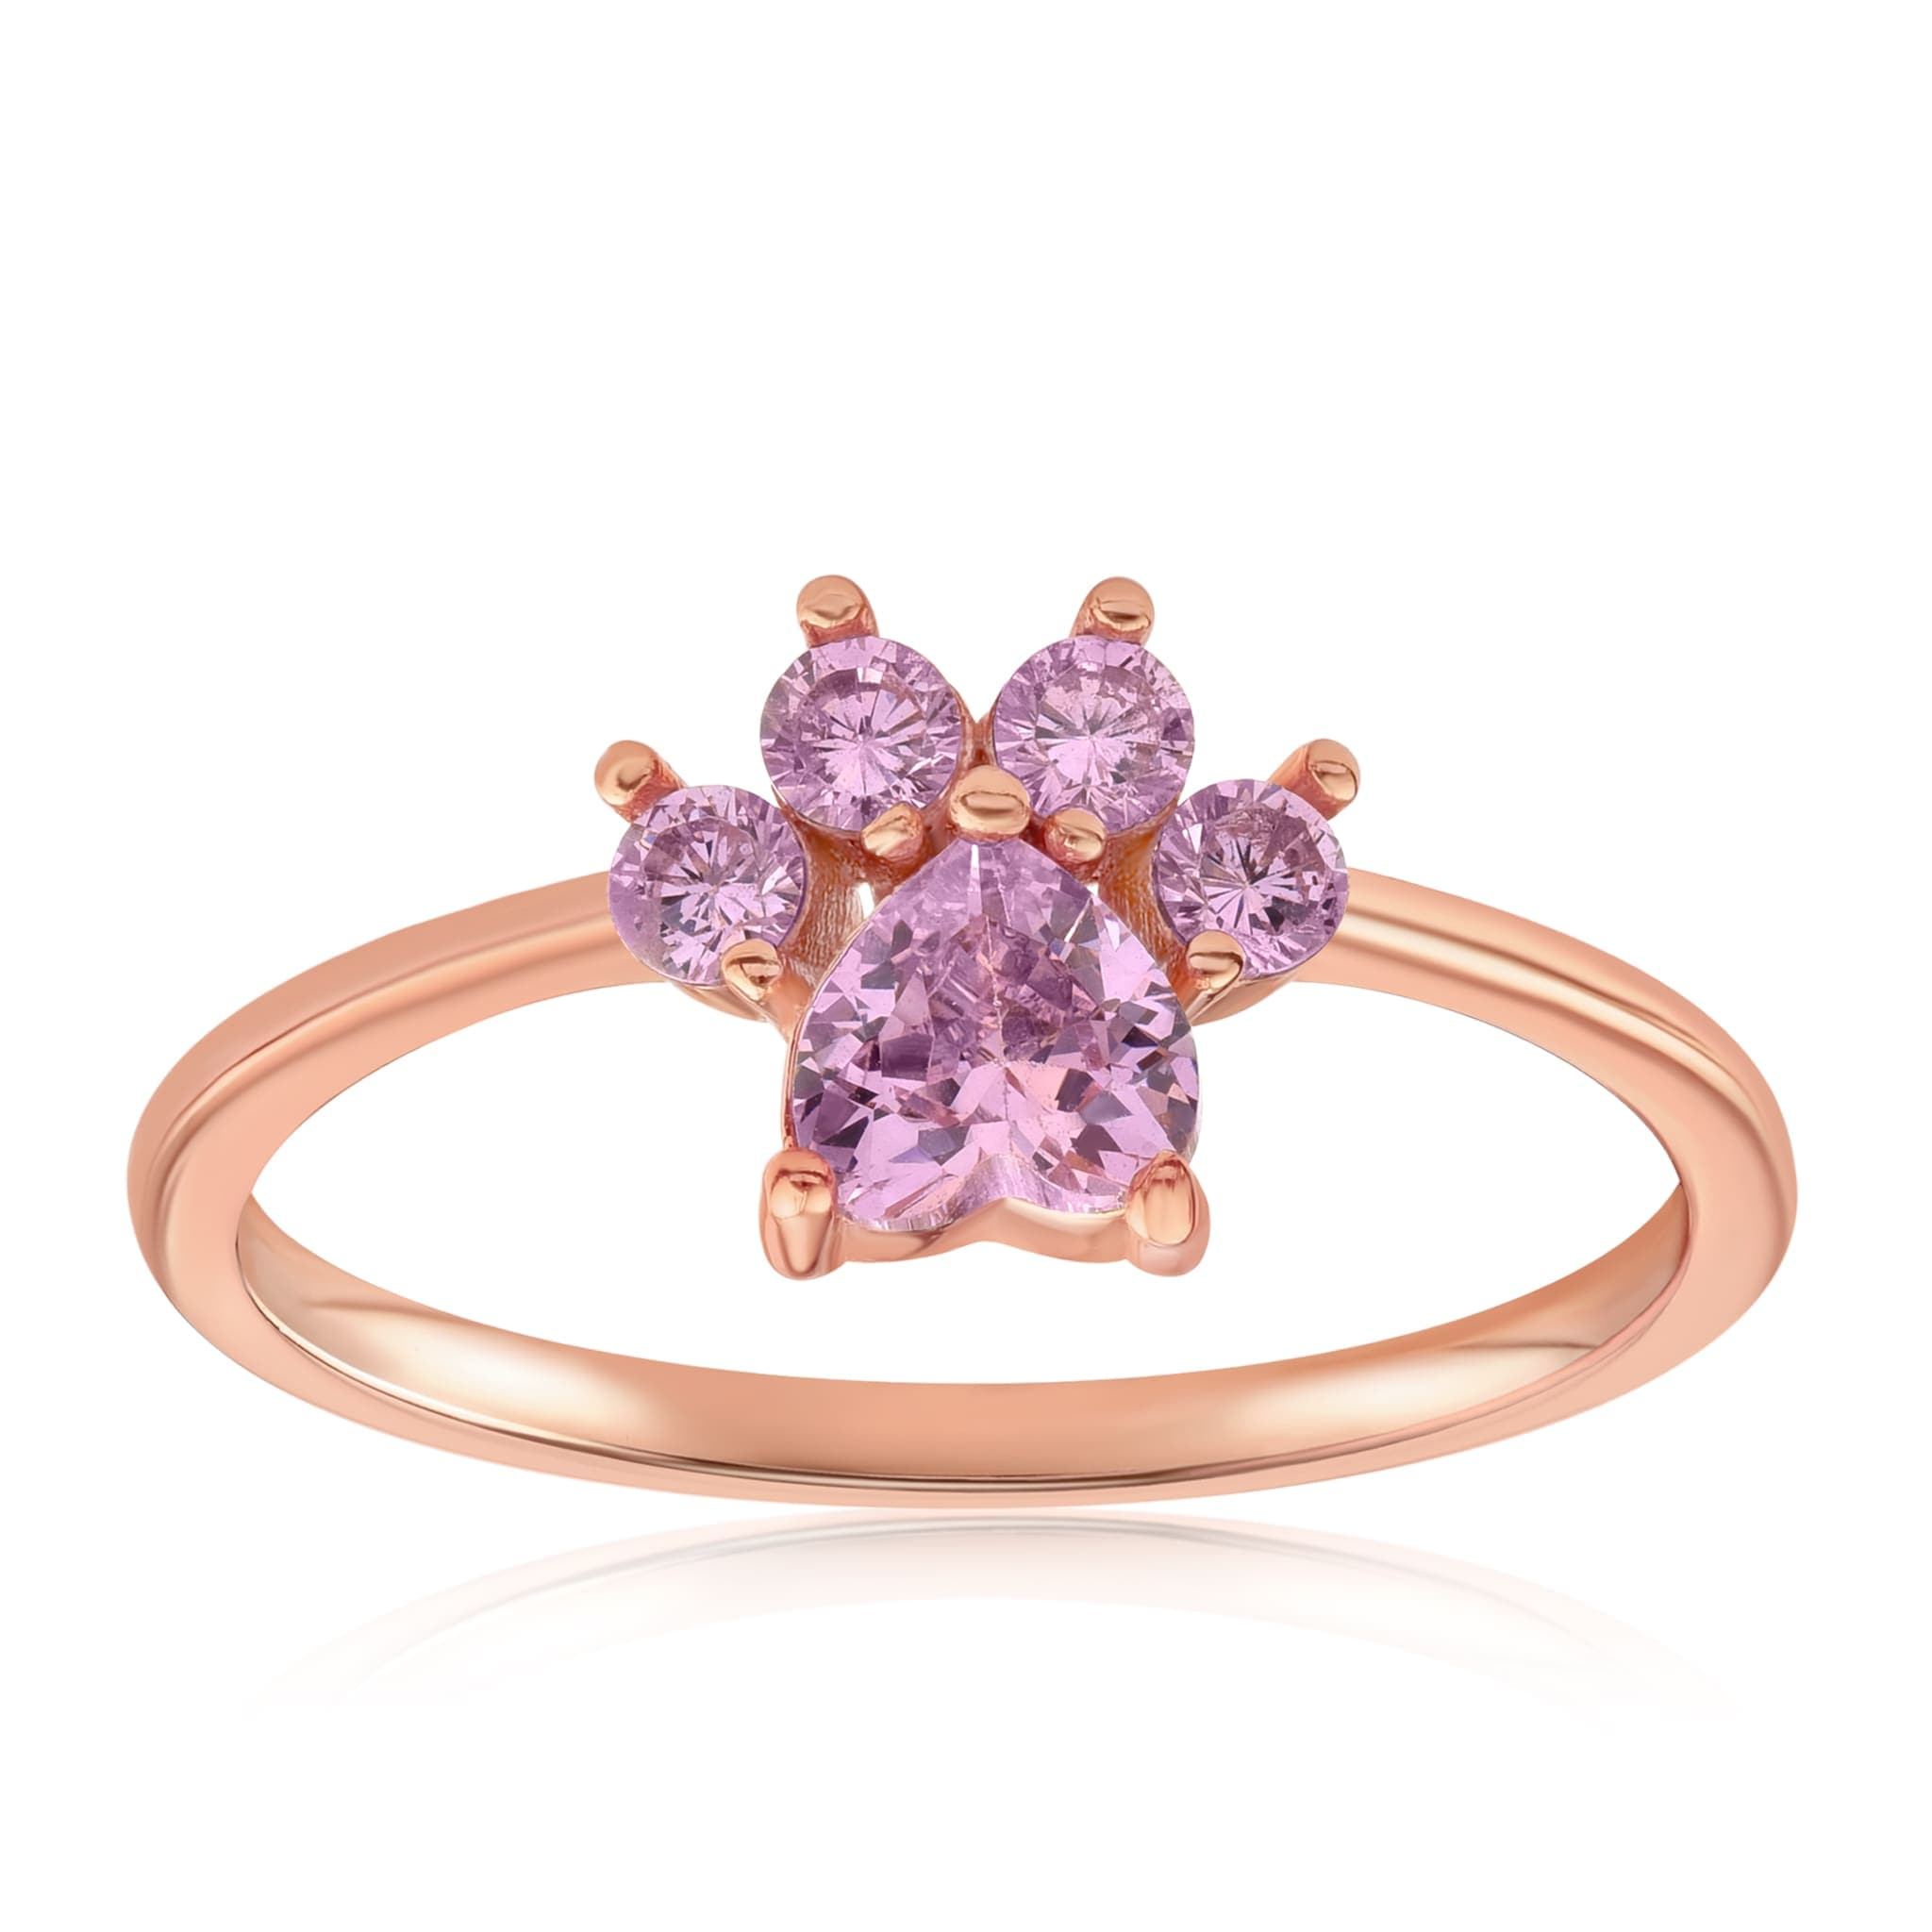 Bella Paw Rose Quartz Ring - Front View Facing Up - 18K Rose Gold Vermeil